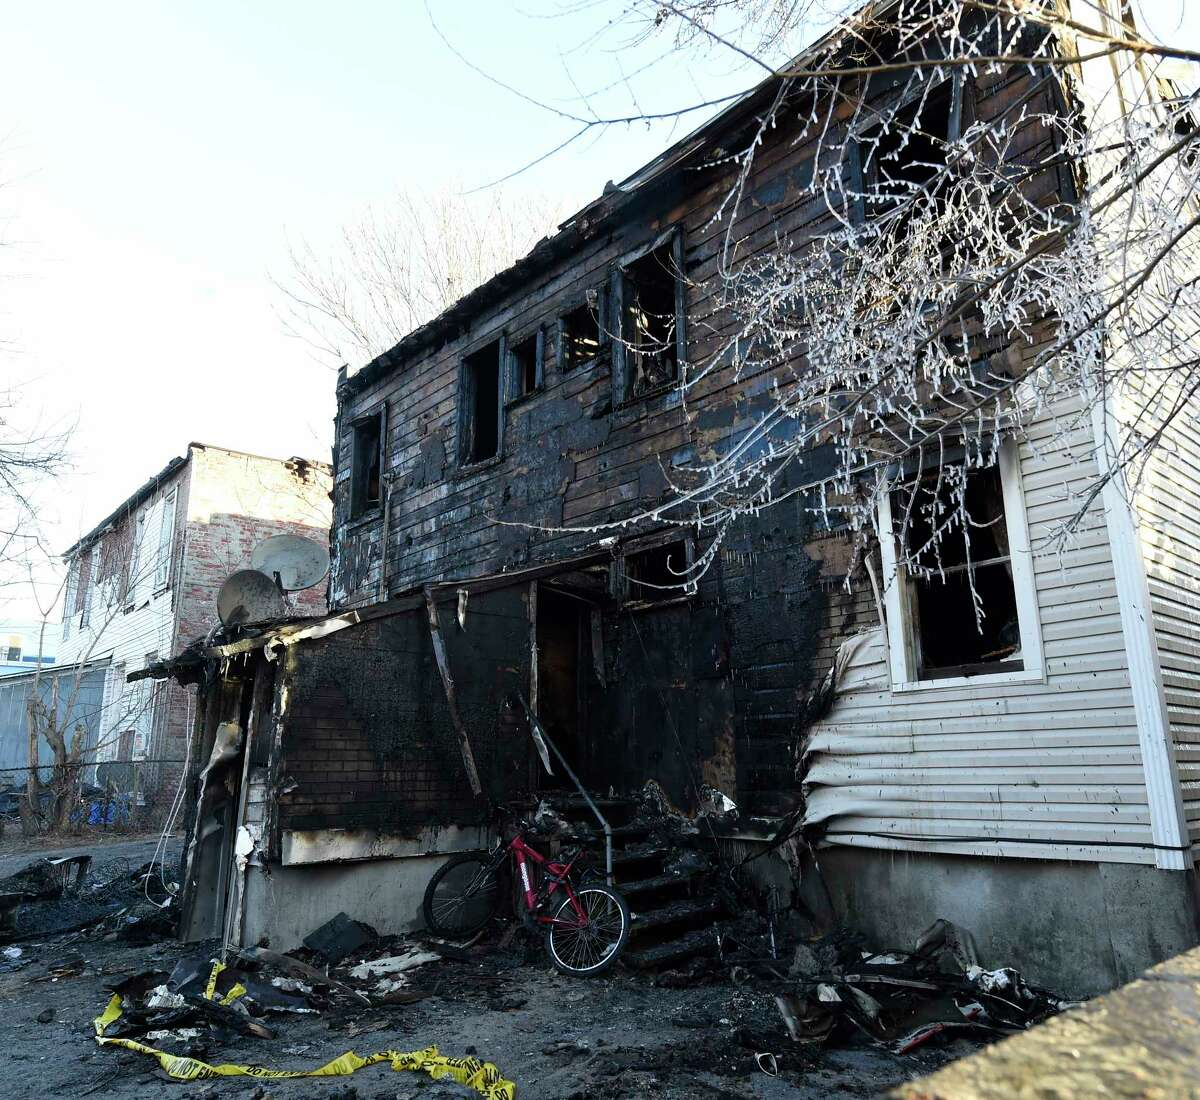 New York State Fire and Town of Colonie Fire Services are investigating after a fire destroyed the dwelling at 1366 Central Avenue Friday Mar. 4, 2017 in Colonie, N.Y. (Skip Dickstein/Times Union)